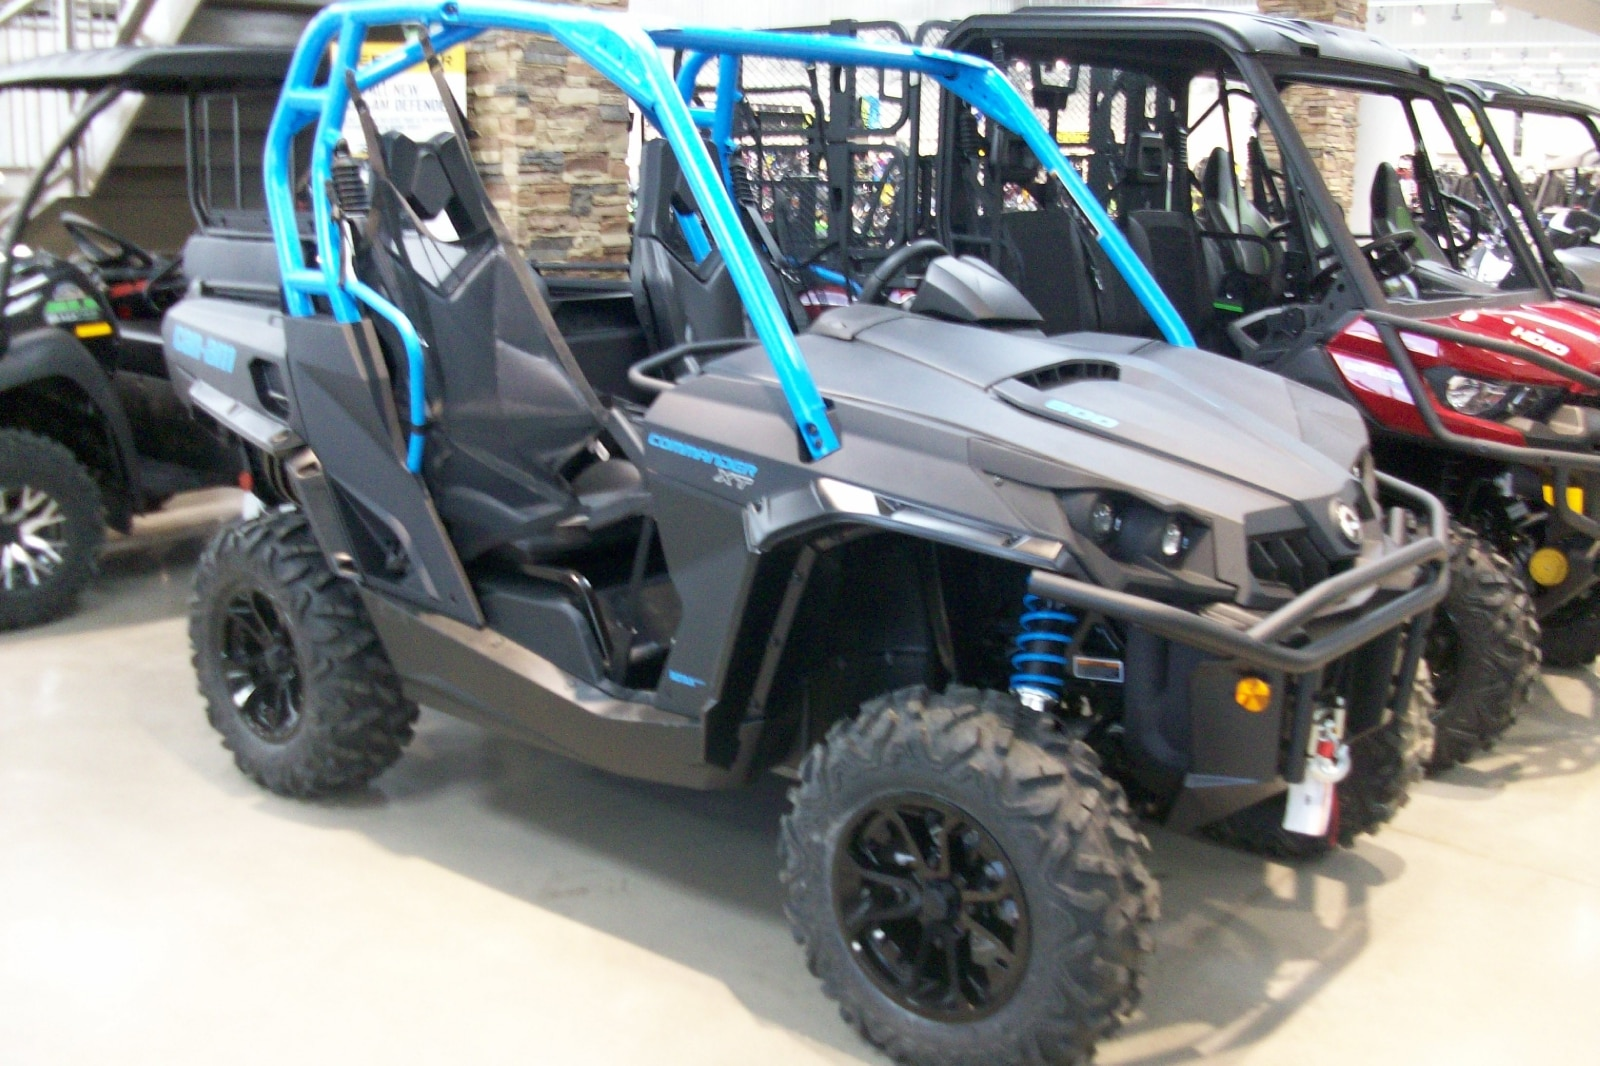 2016 CAN-AM Commander 800R XT - Price includes Freight, PDI, and other fees!